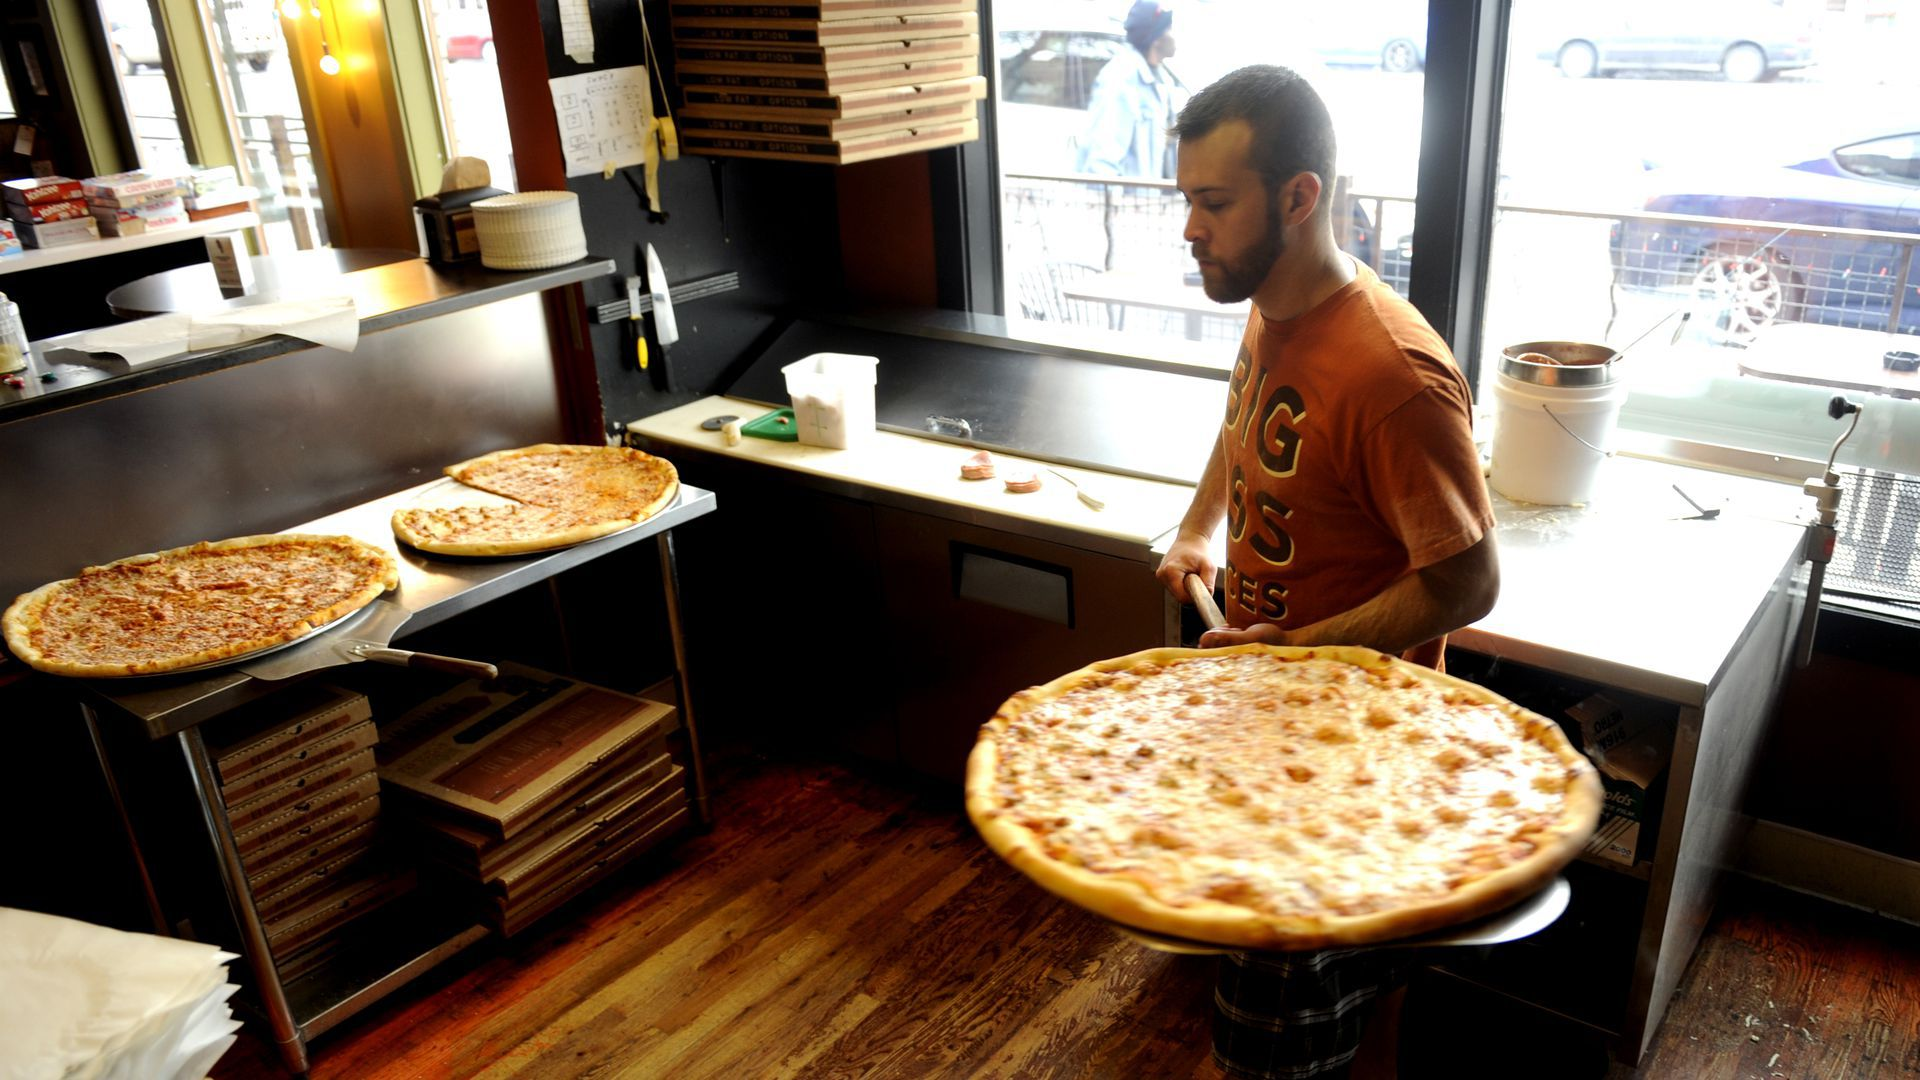 An employee carries a large pizza